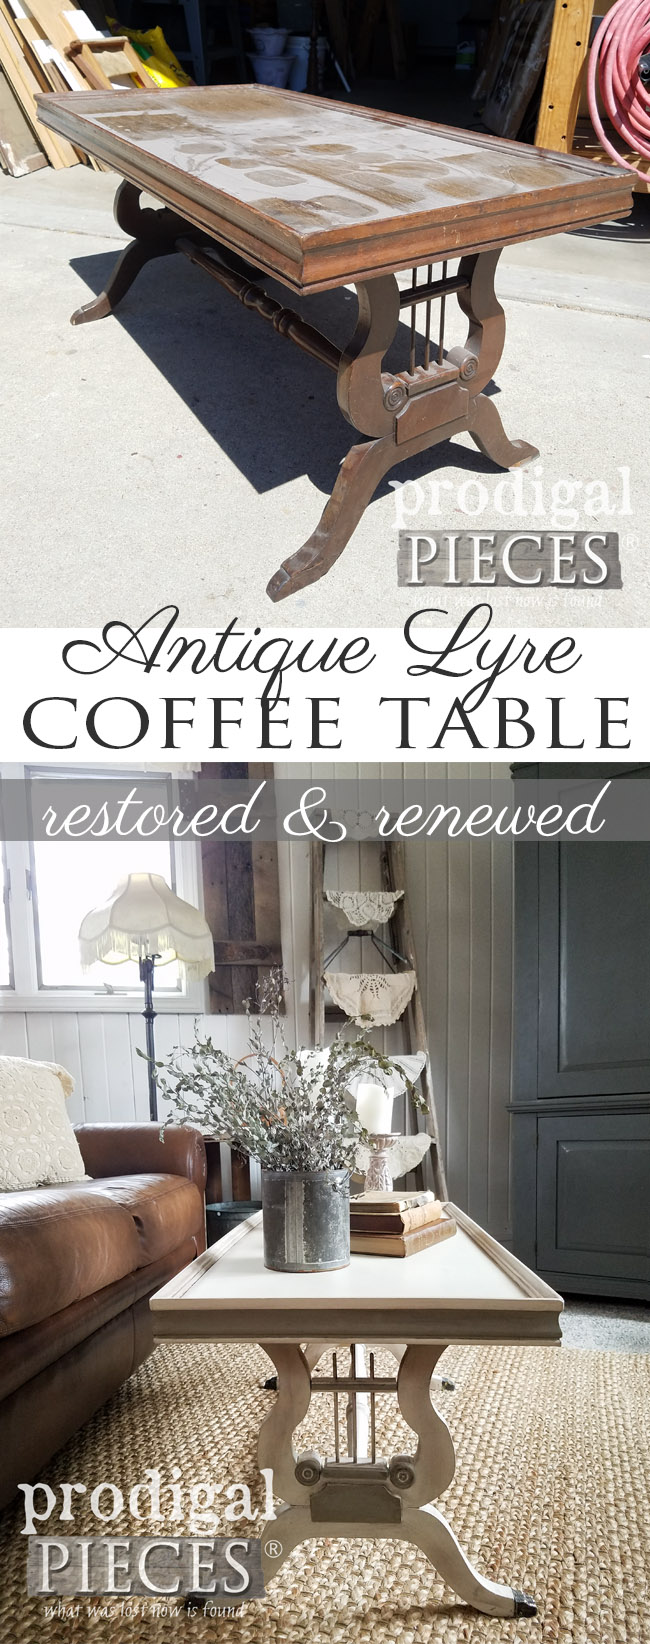 What a save! This broken antique lyre coffee table had seen better days, but Larissa of Prodigal Pieces saw fit to restore it and give it new life. Details at prodigalpieces.com #prodigalpieces #furniture #homedecor #shopping